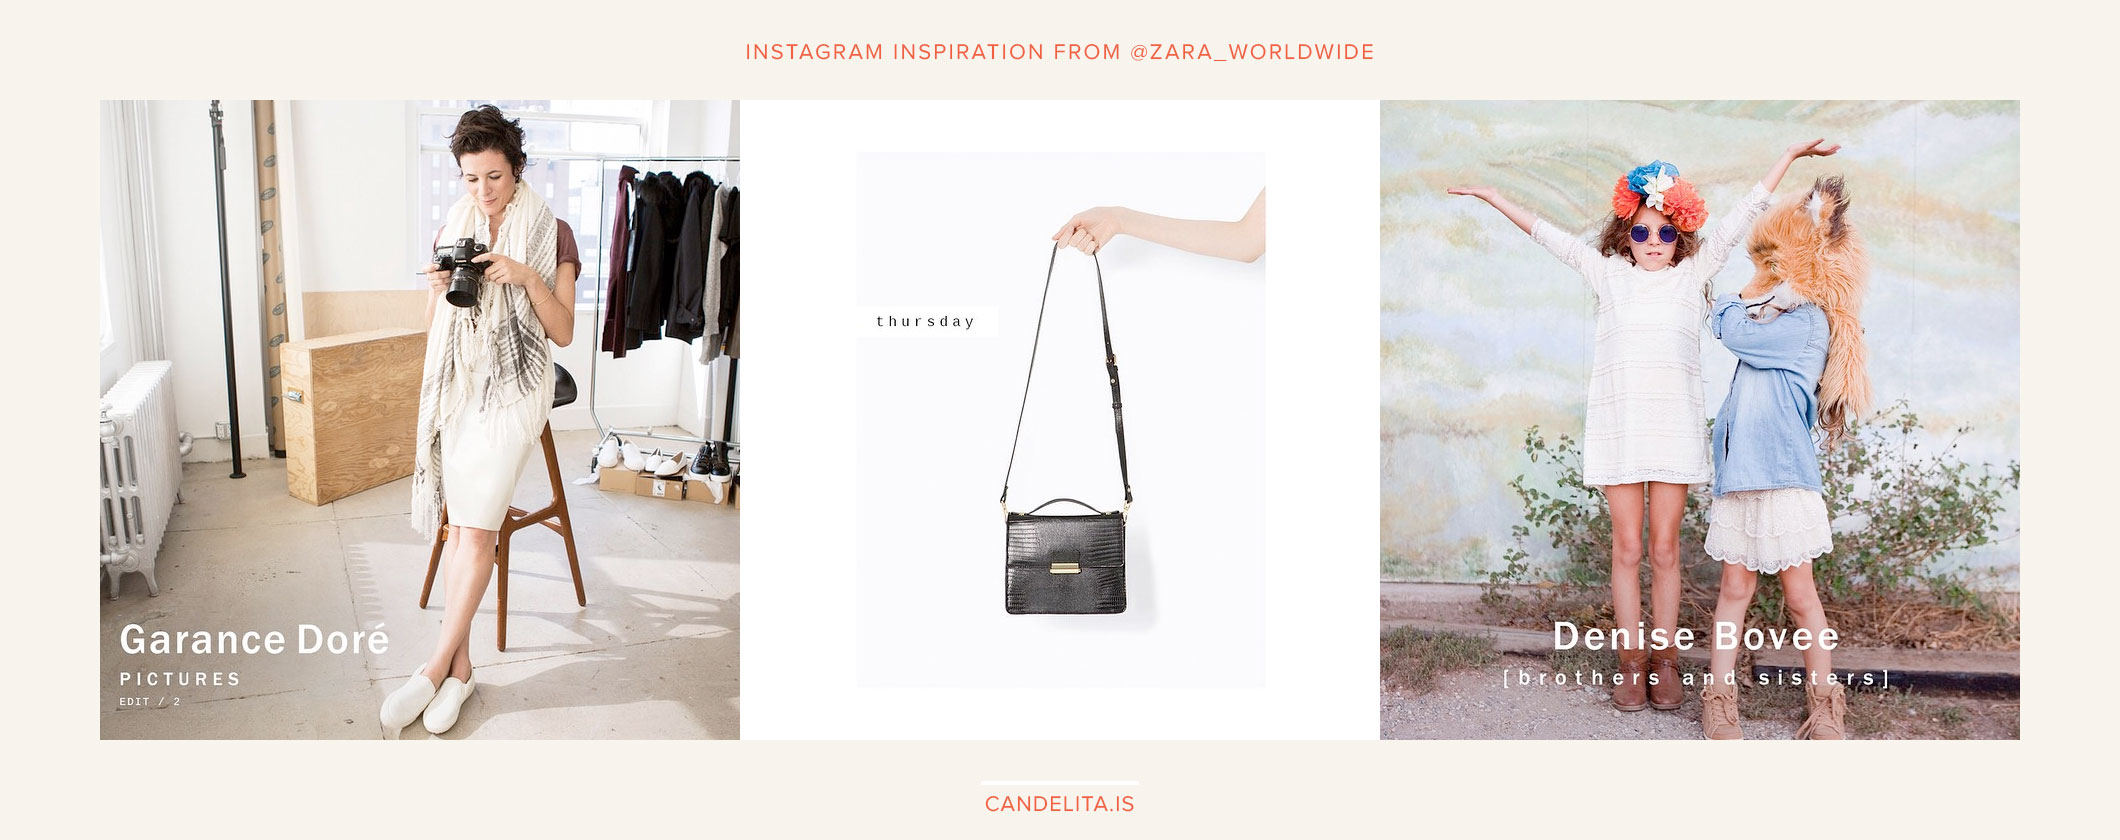 How to become famous on Instagram - Zara